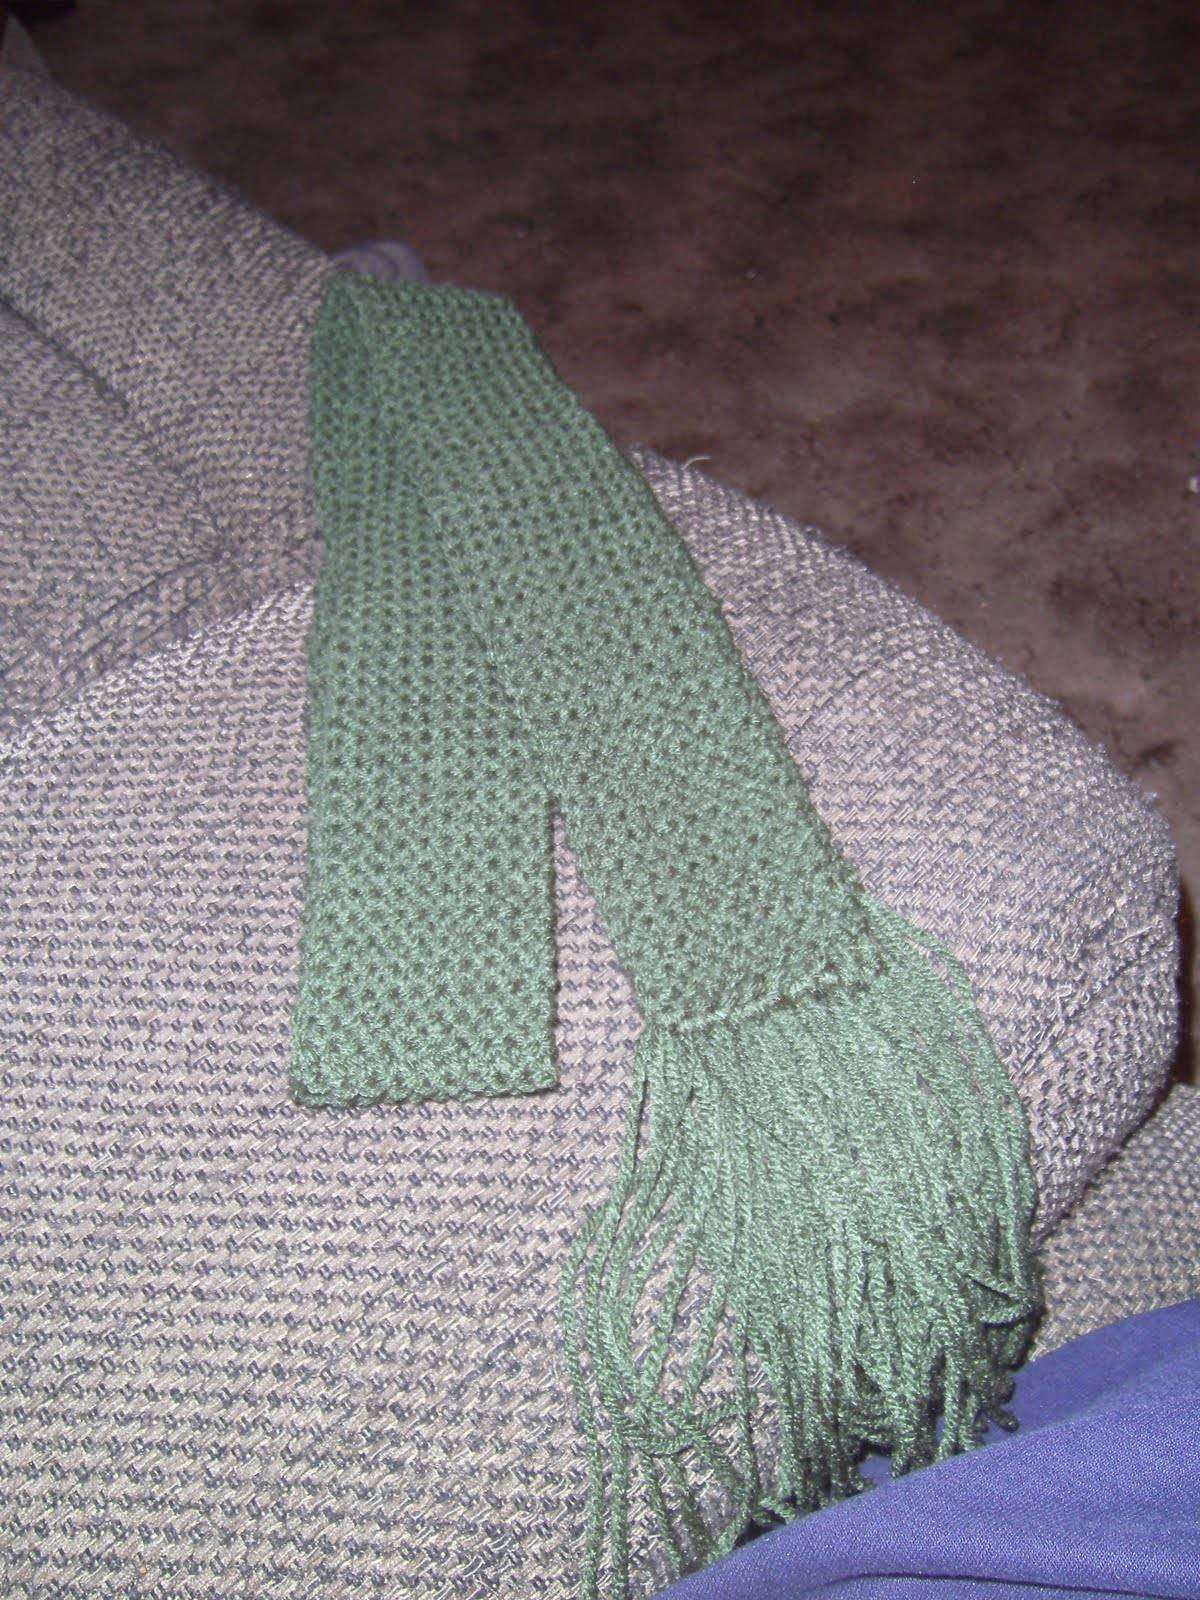 Knook Knitting Patterns : Family, Books and Crochet...Oh My!: Skinny Scarf (Free Knook Pattern)